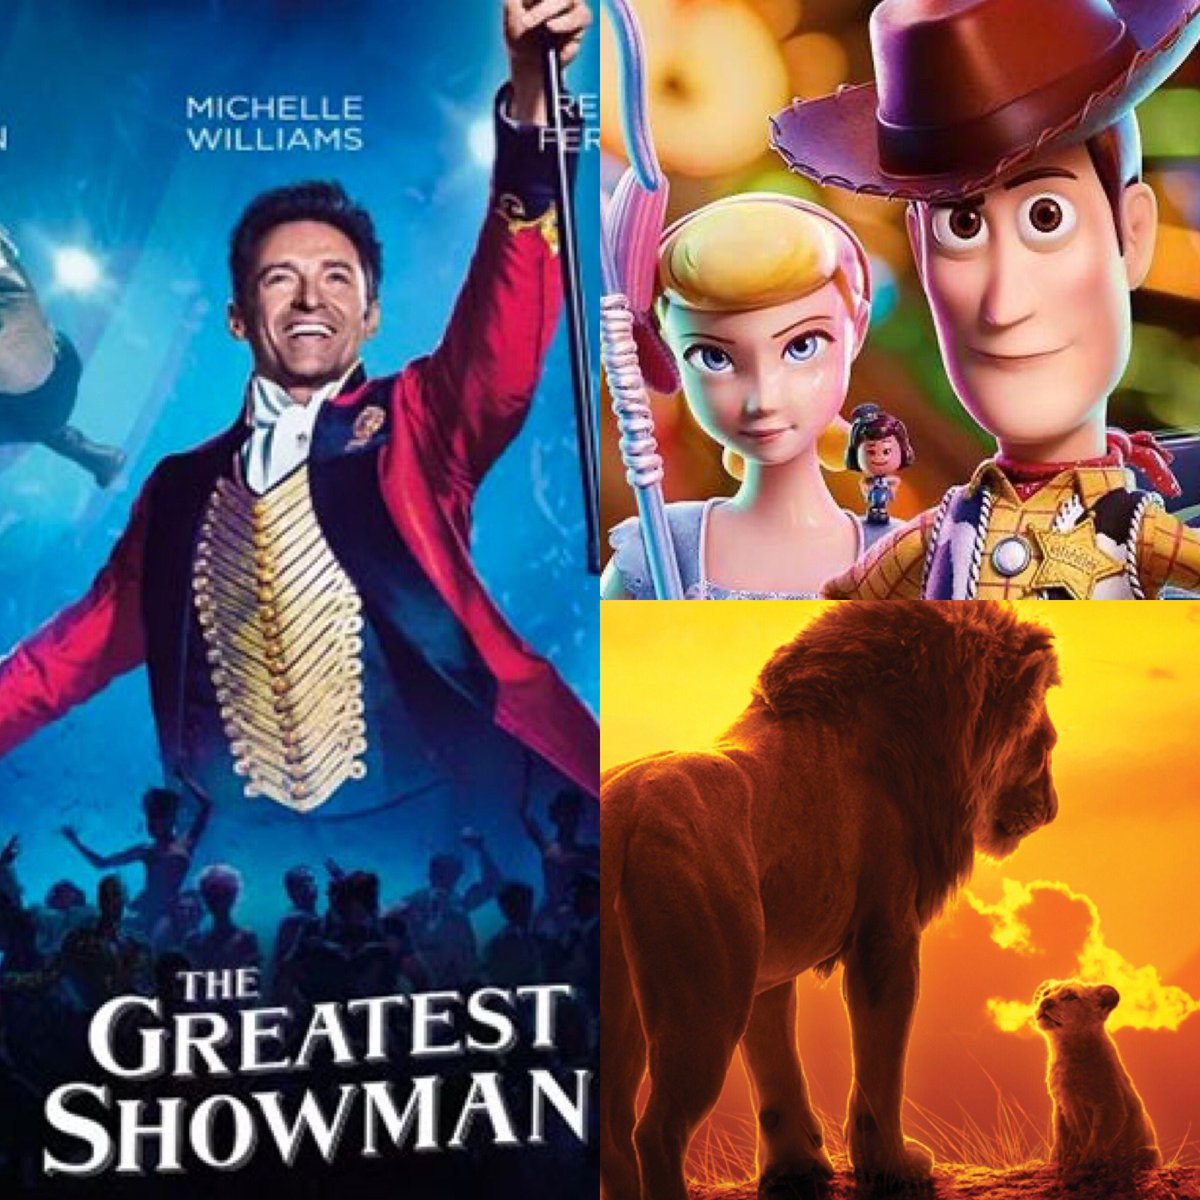 HALF-TERM FILMS FOR ALL THE FAMILY @StablesMK  During February half-term, we'll be showing three great films for all the family to enjoy. The Greatest Showman | Toy Story 4 | The Lion King | For more info >> https://t.co/rVRtJ70i8j  #TheStables50 https://t.co/ioxo0xXn1h